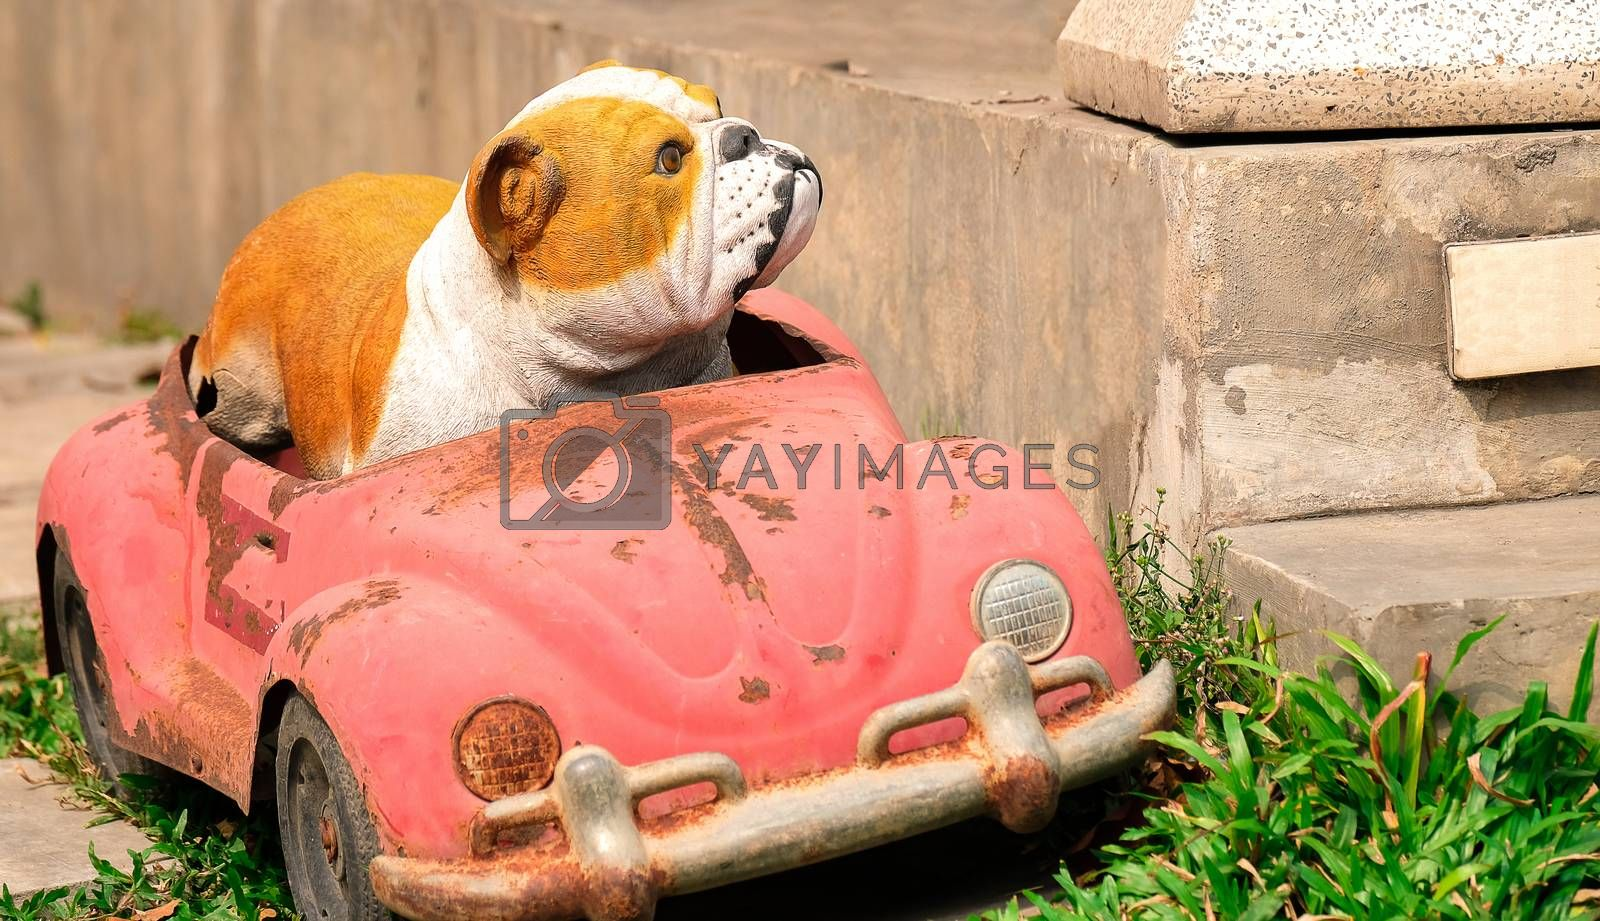 a bulldog model and a car by Nawoot